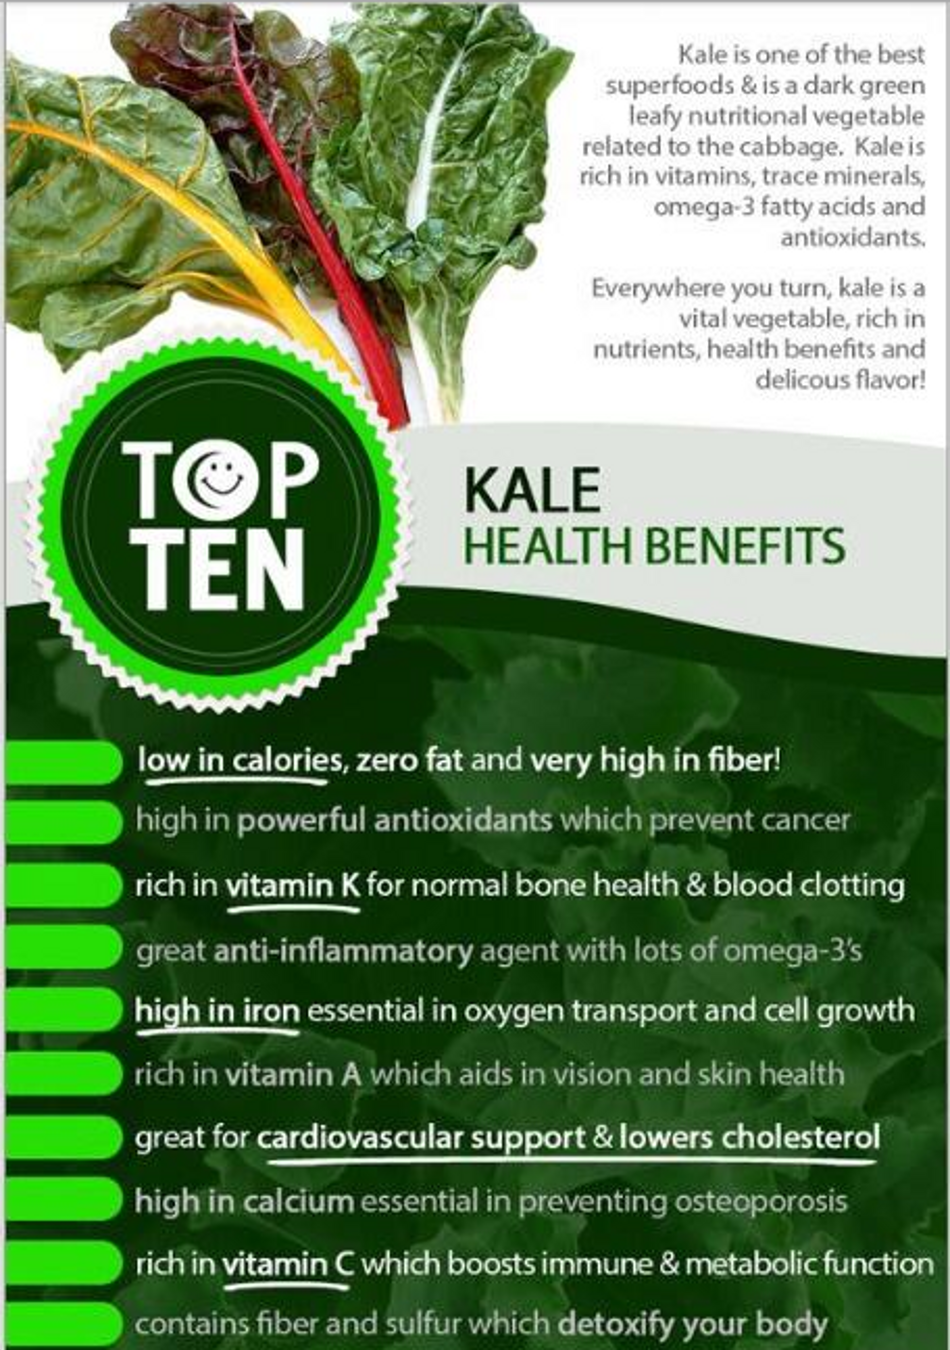 kale health benefits  u0026 recipes